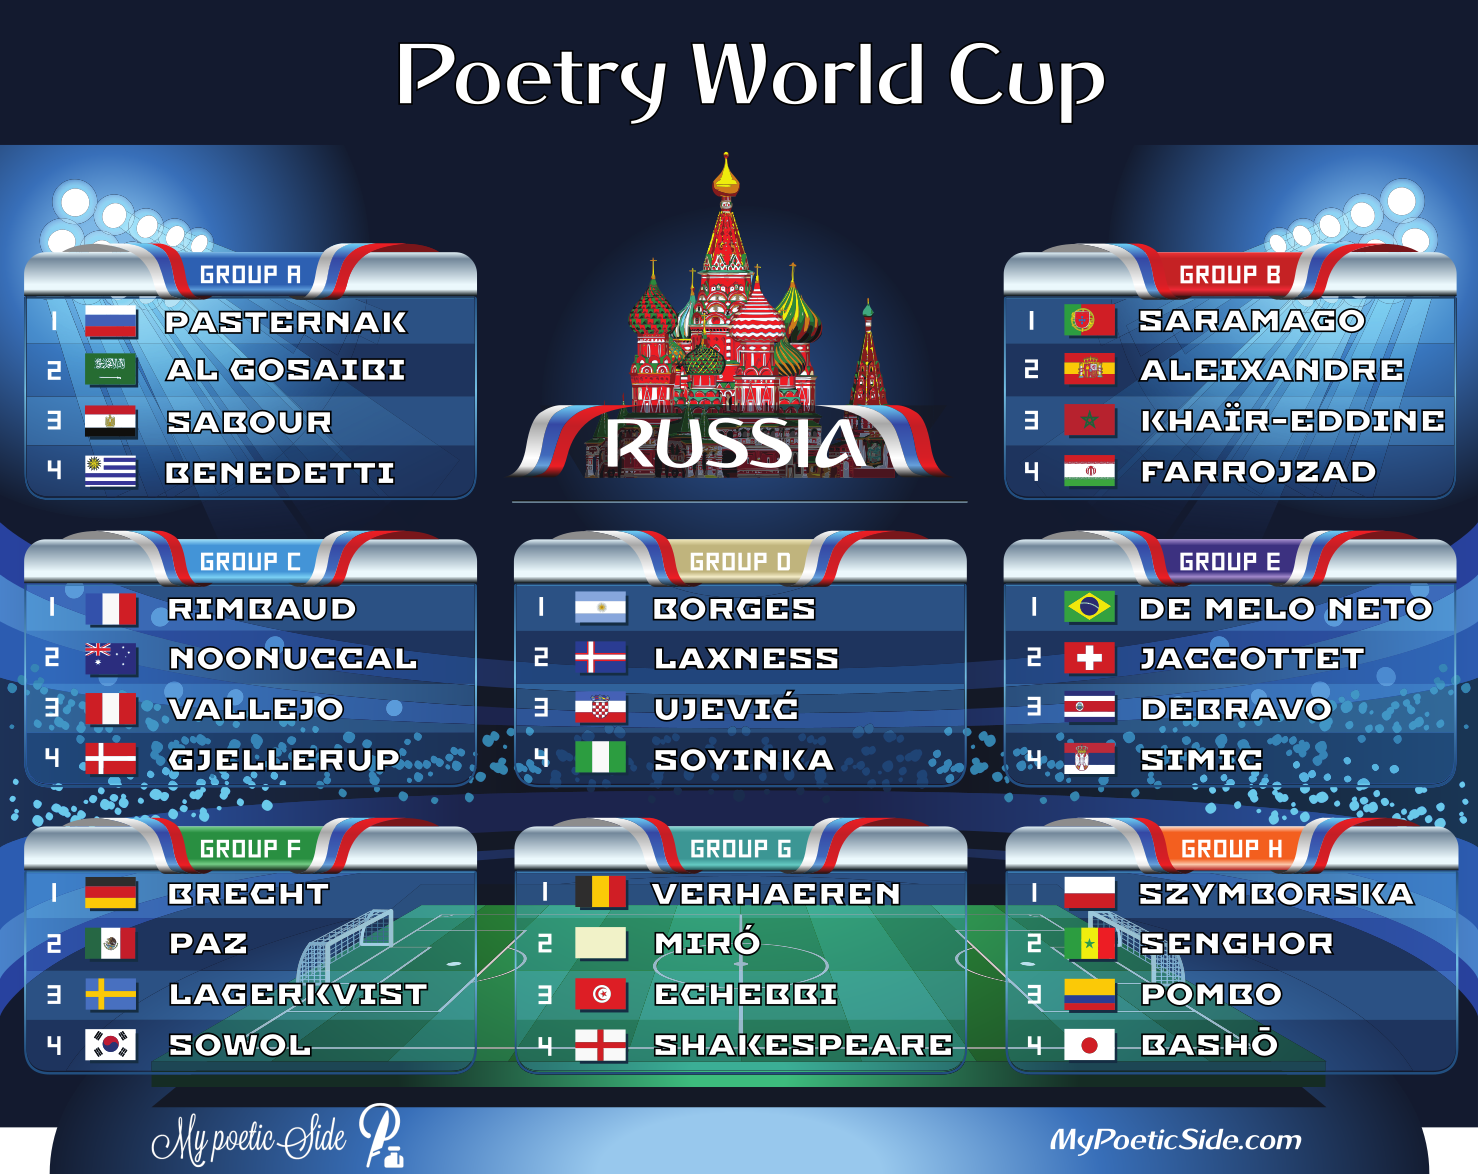 The Poetry World Cup